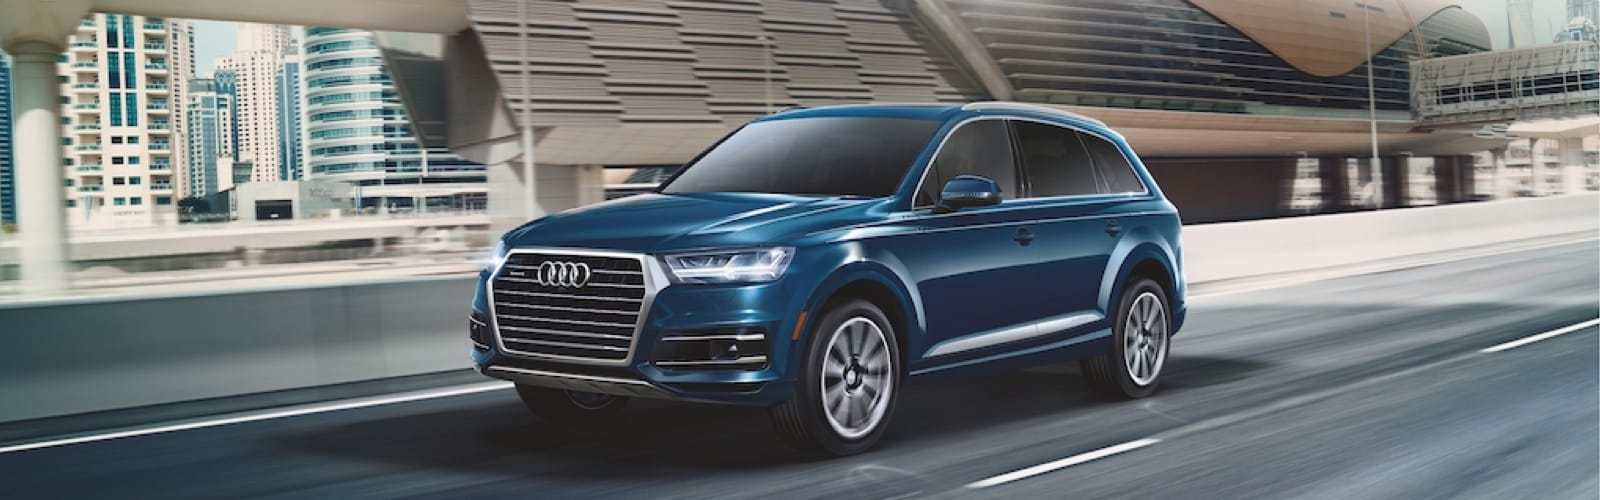 audi q7 lease: great offers on 2018 inventory not to be missed